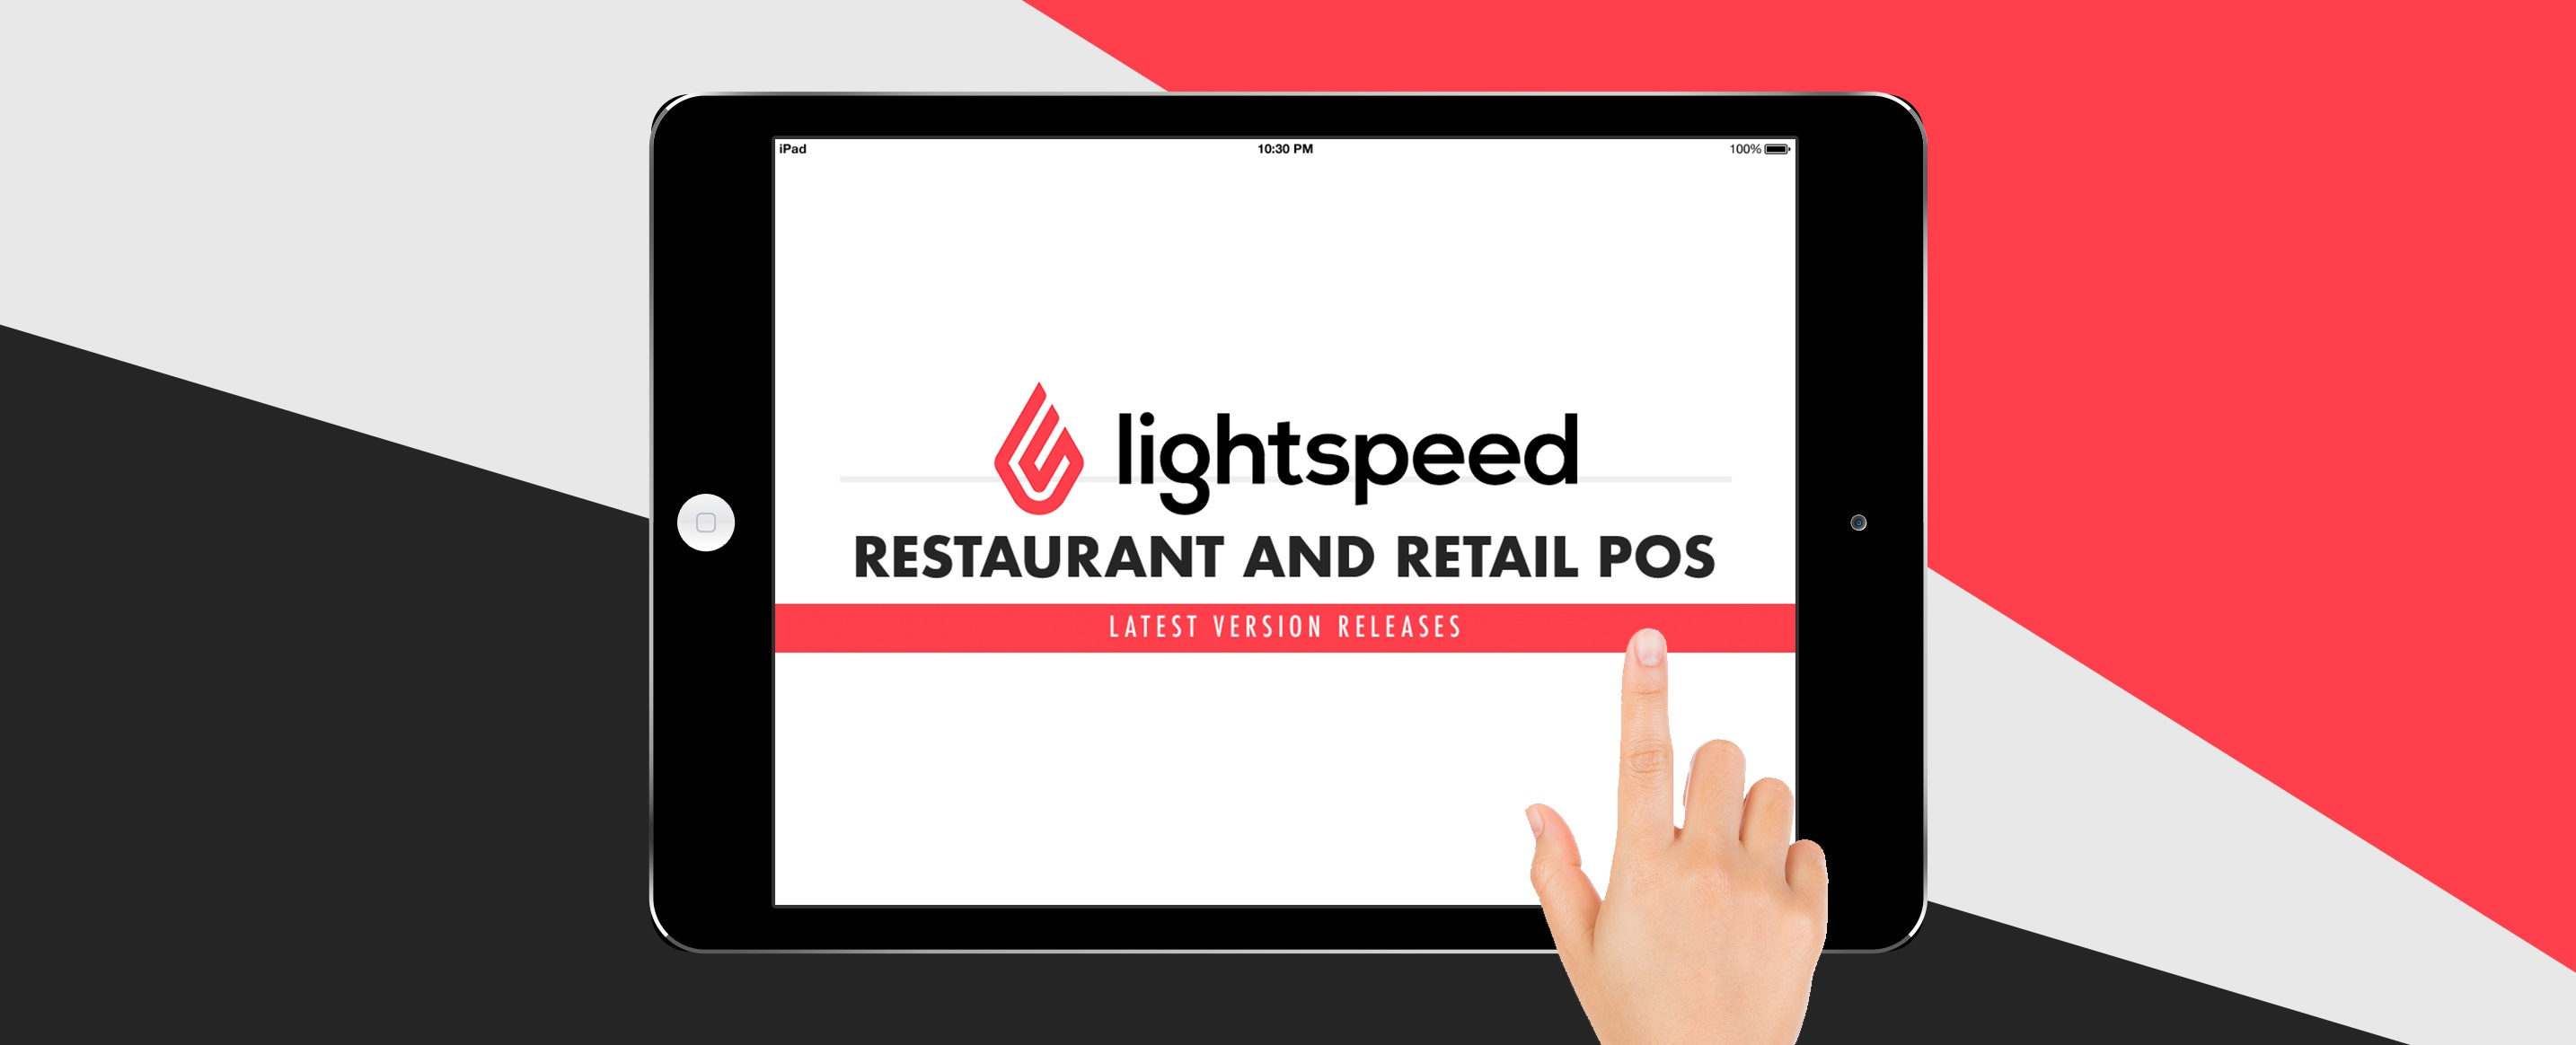 Lightspeed-Restaurant-and-Retail-POS-Latest-Version-Releases